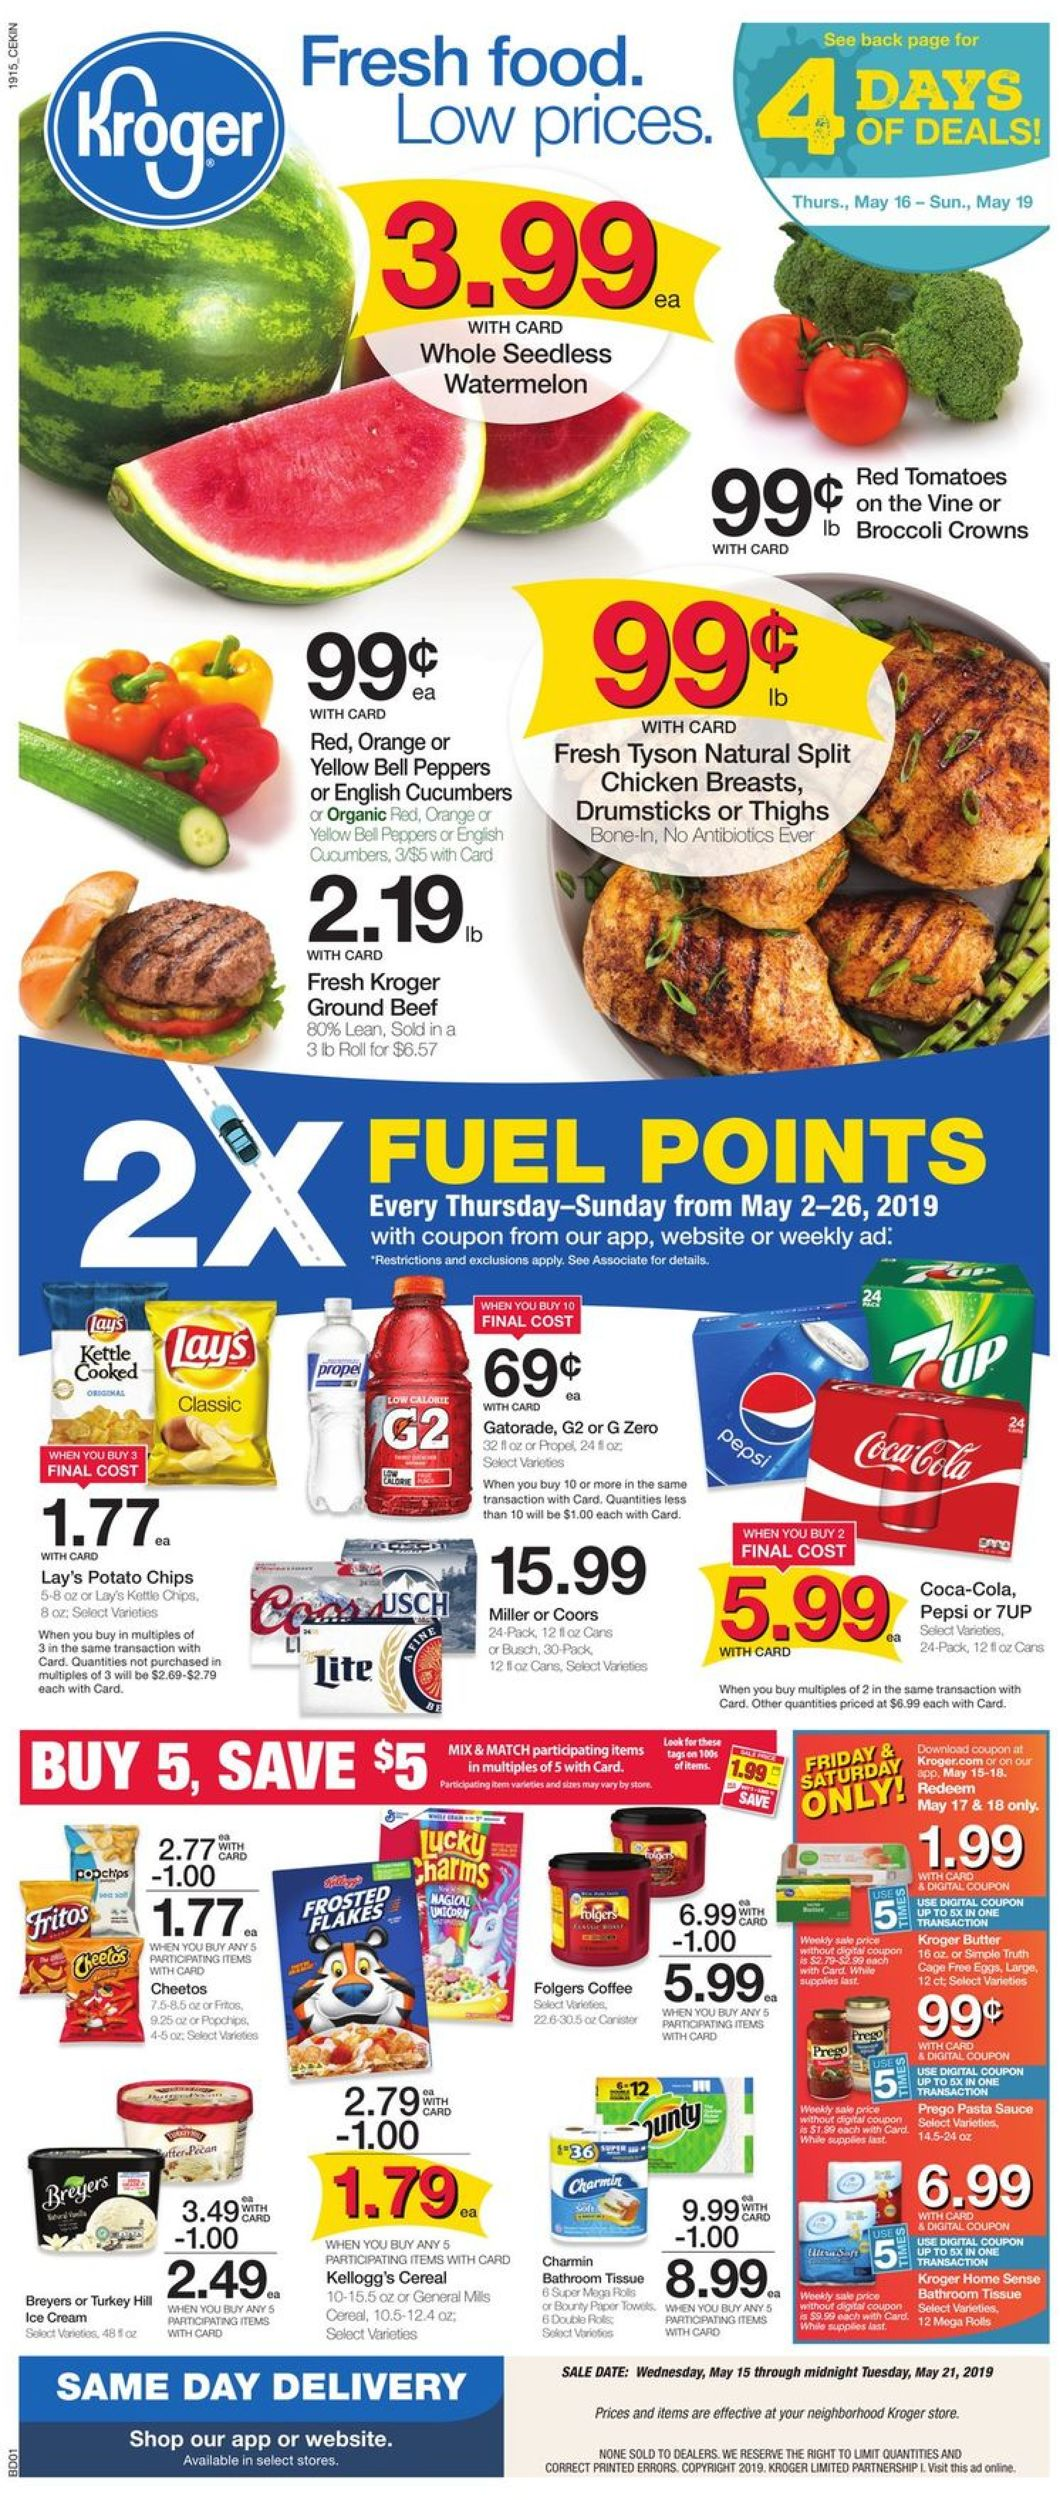 Kroger Current weekly ad 05/15 - 05/21/2019 - frequent-ads com